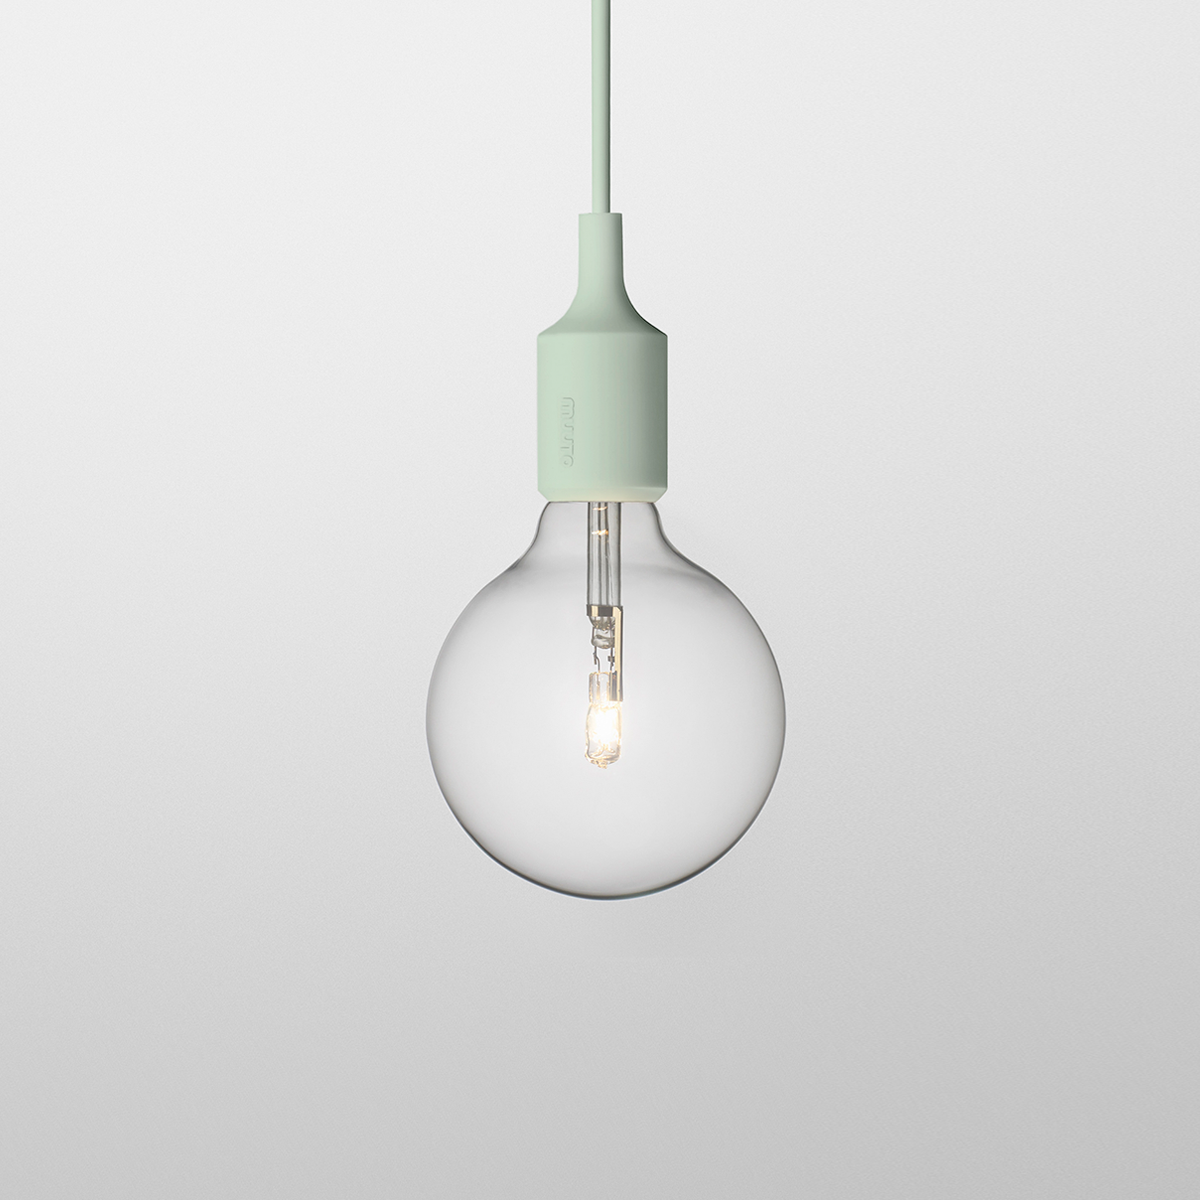 Muuto E27 Socket Suspension Lamp 彩色座標 圓形吊燈